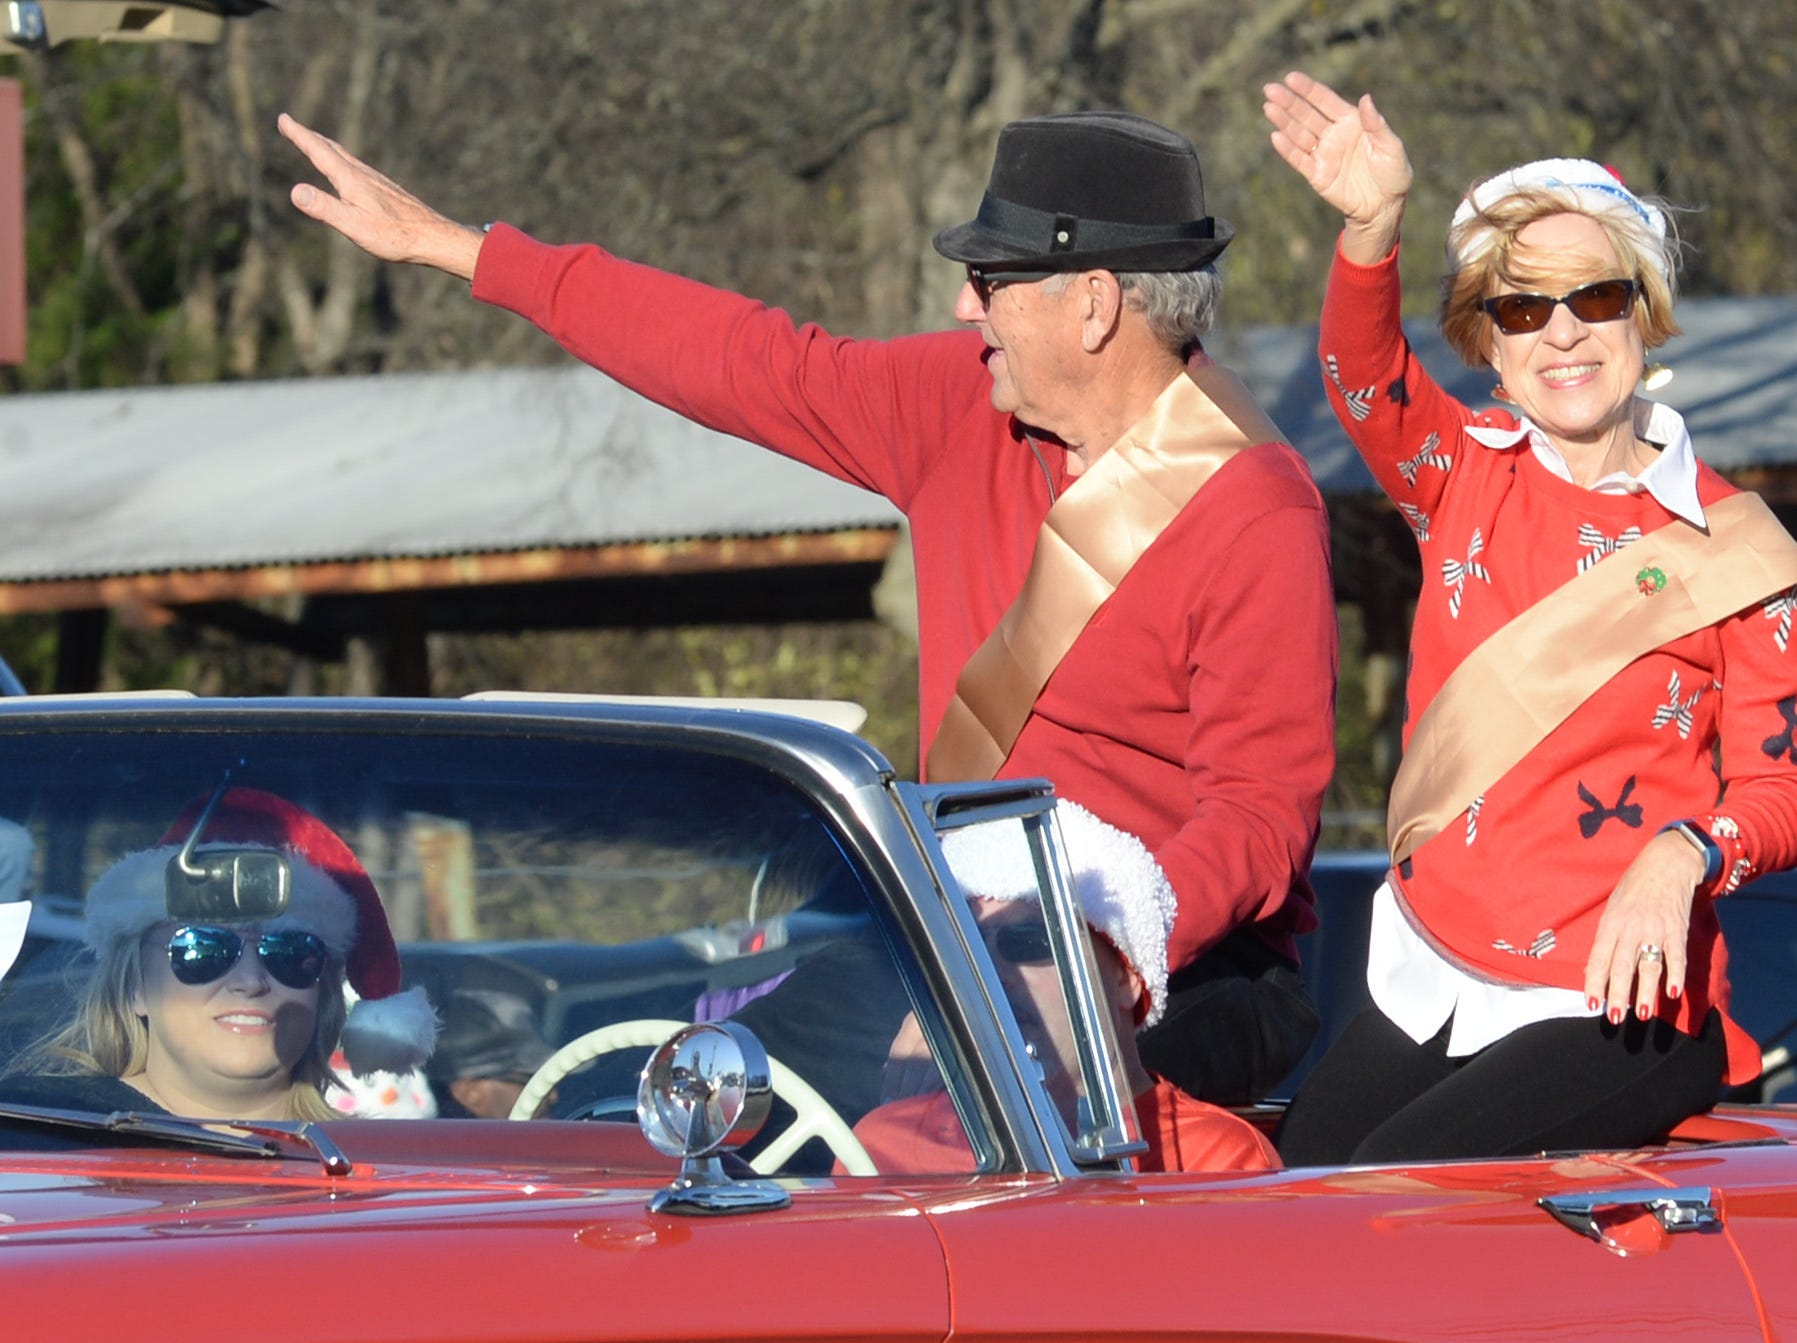 Anthony and Irene Calderon participate in the Hendersonville Christmas Parade on Sunday, Dec. 2.